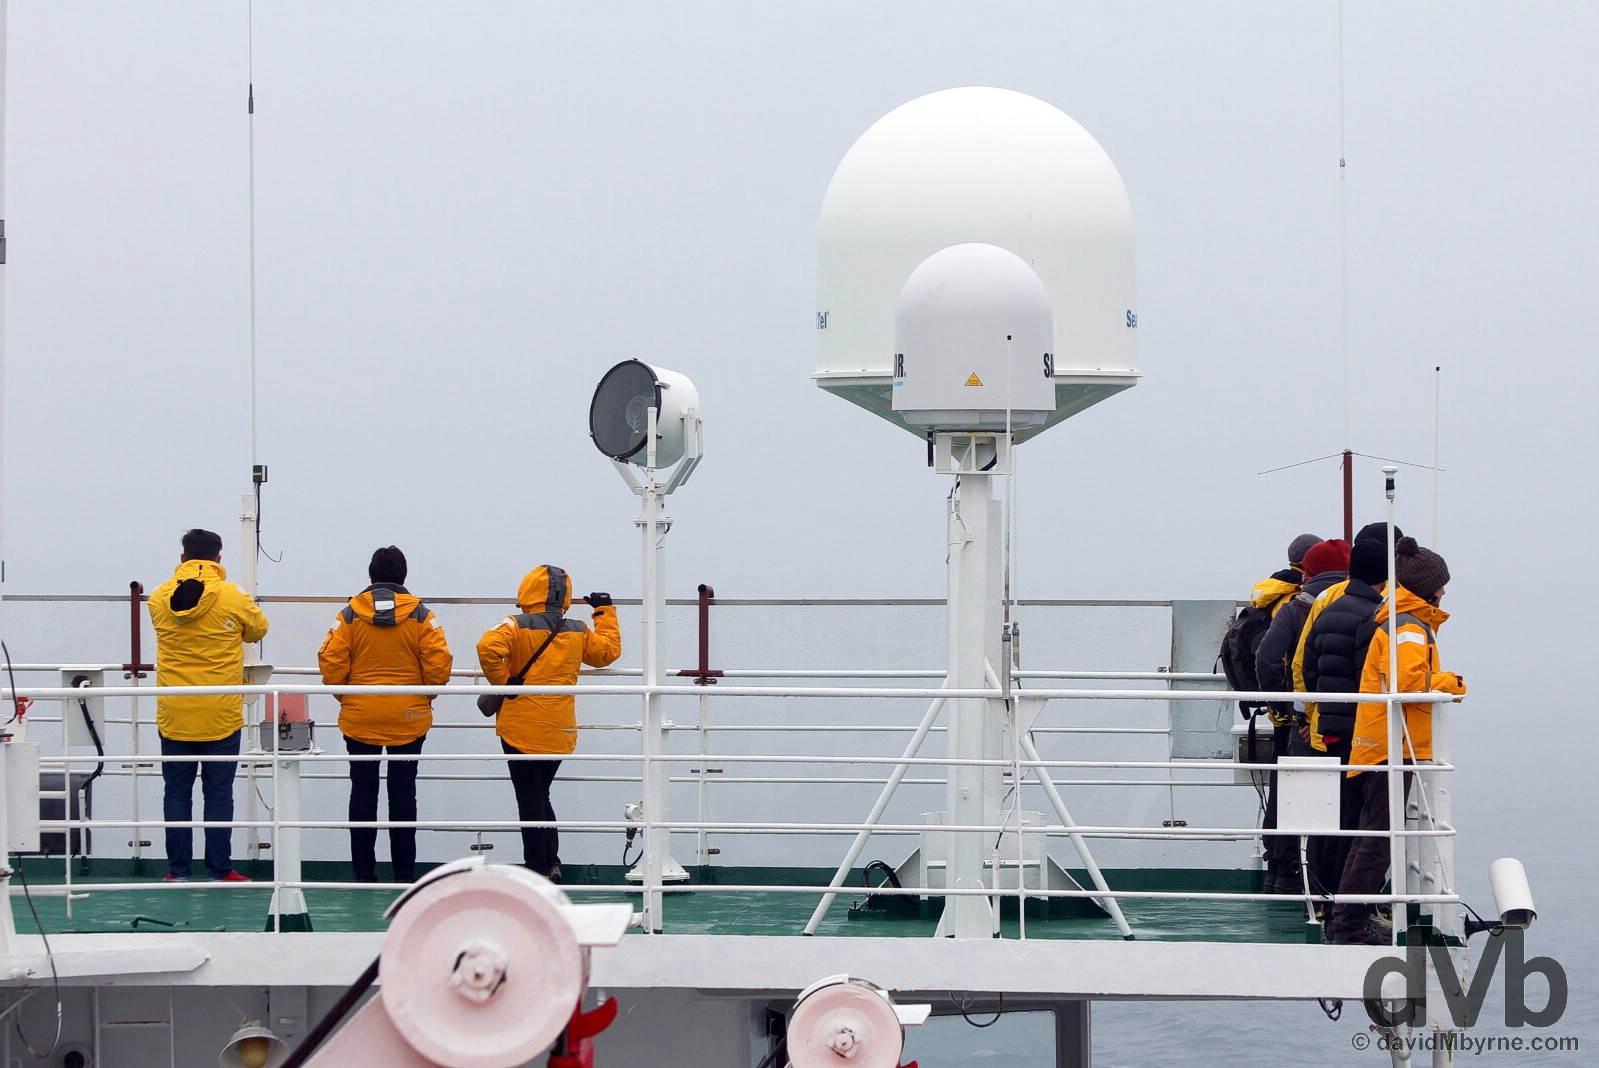 Arriving at the sub-Antarctic Aticho Island group of the South Shetland Islands on board the M/V Ocean Endeavour. November 28, 2015.